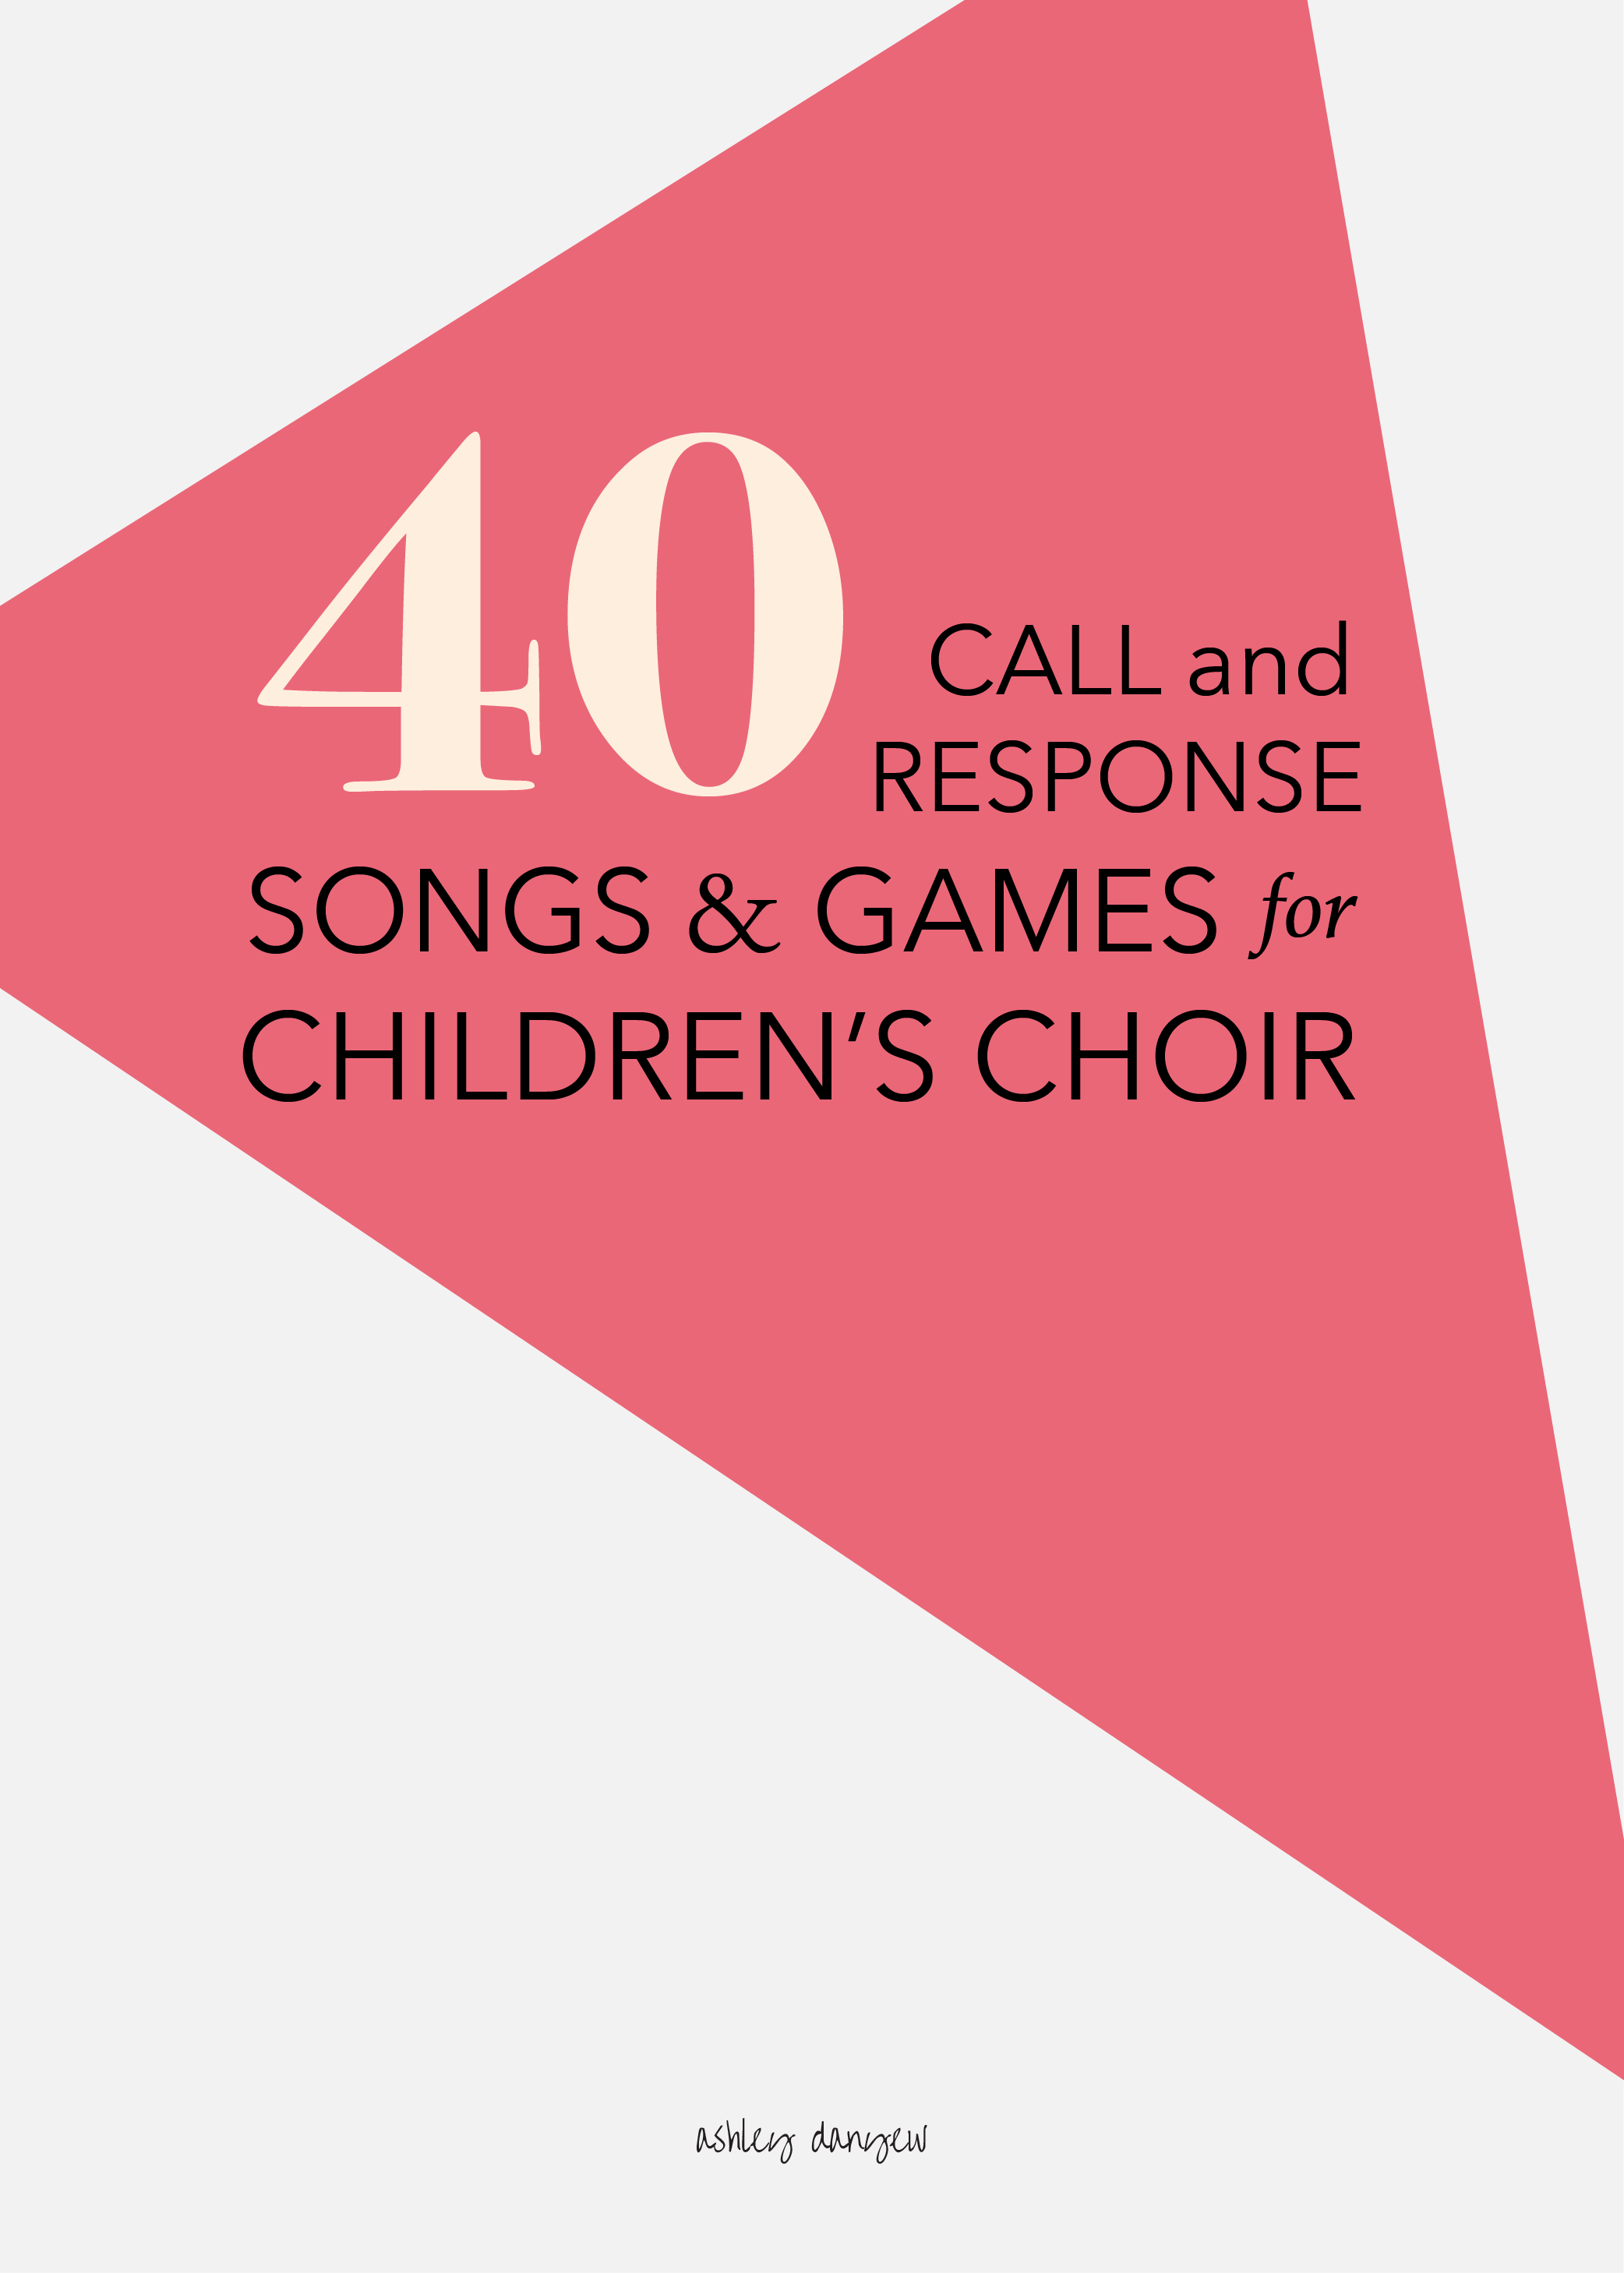 Copy of 40 Call and Response Songs & Games for Children's Choir